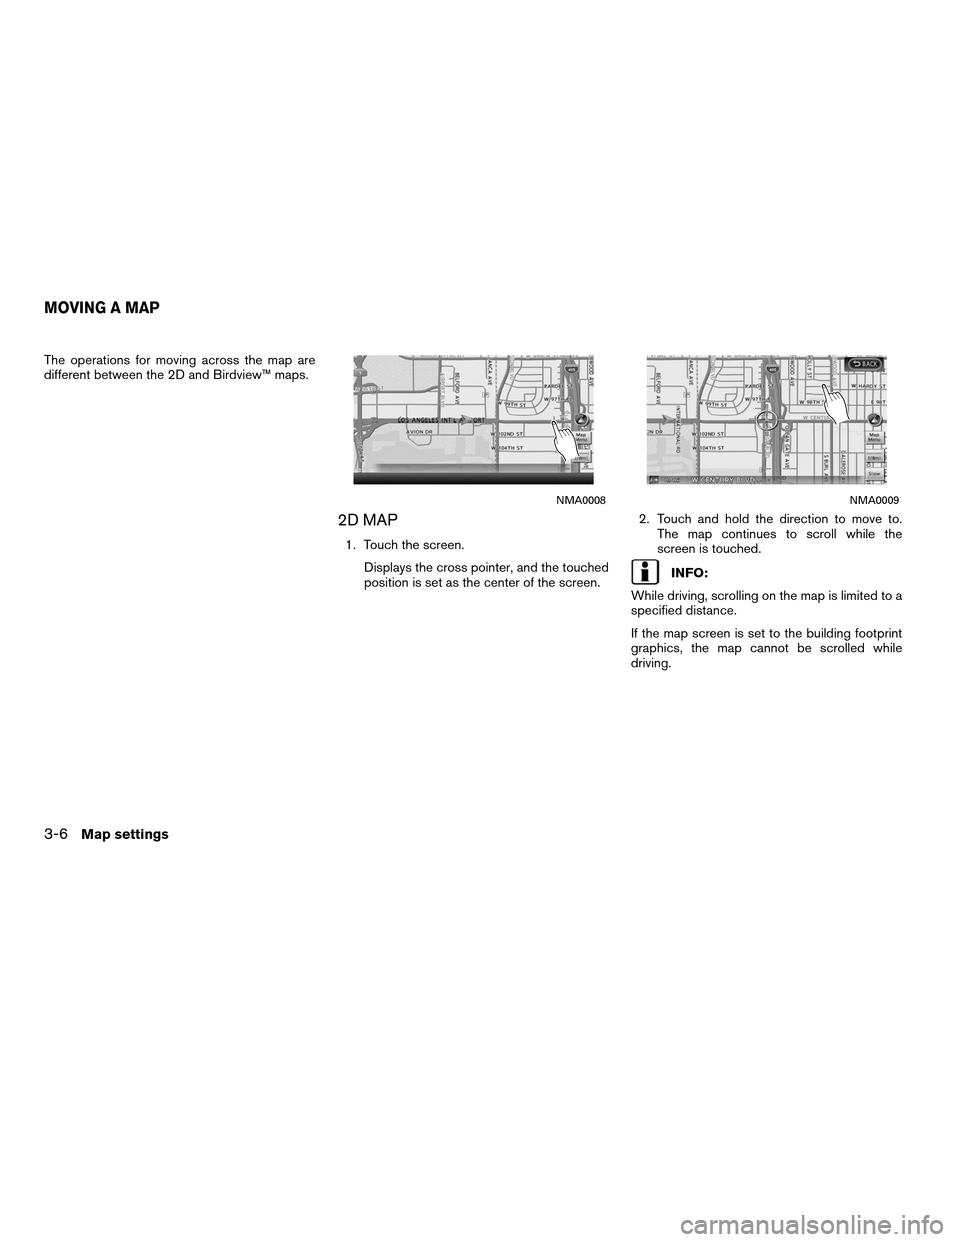 NISSAN ALTIMA HYBRID 2011 L32A / 4.G Navigation Manual, Page 52